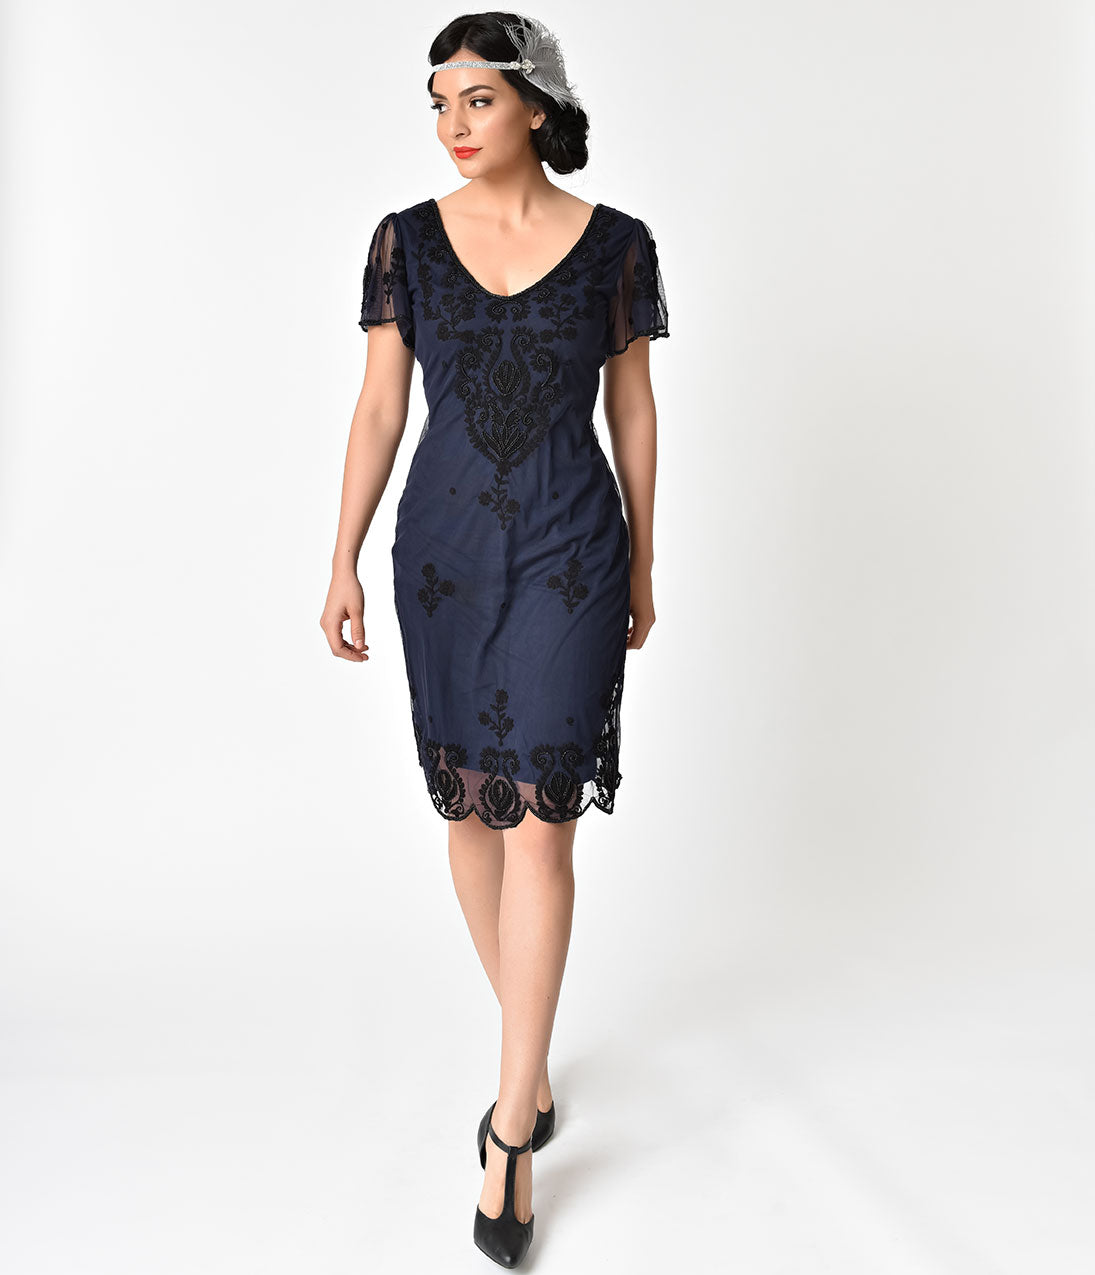 Roaring 20s Costumes- Flapper Costumes, Gangster Costumes Navy Blue  Black Embroidery Lillian Flapper Dress $62.00 AT vintagedancer.com